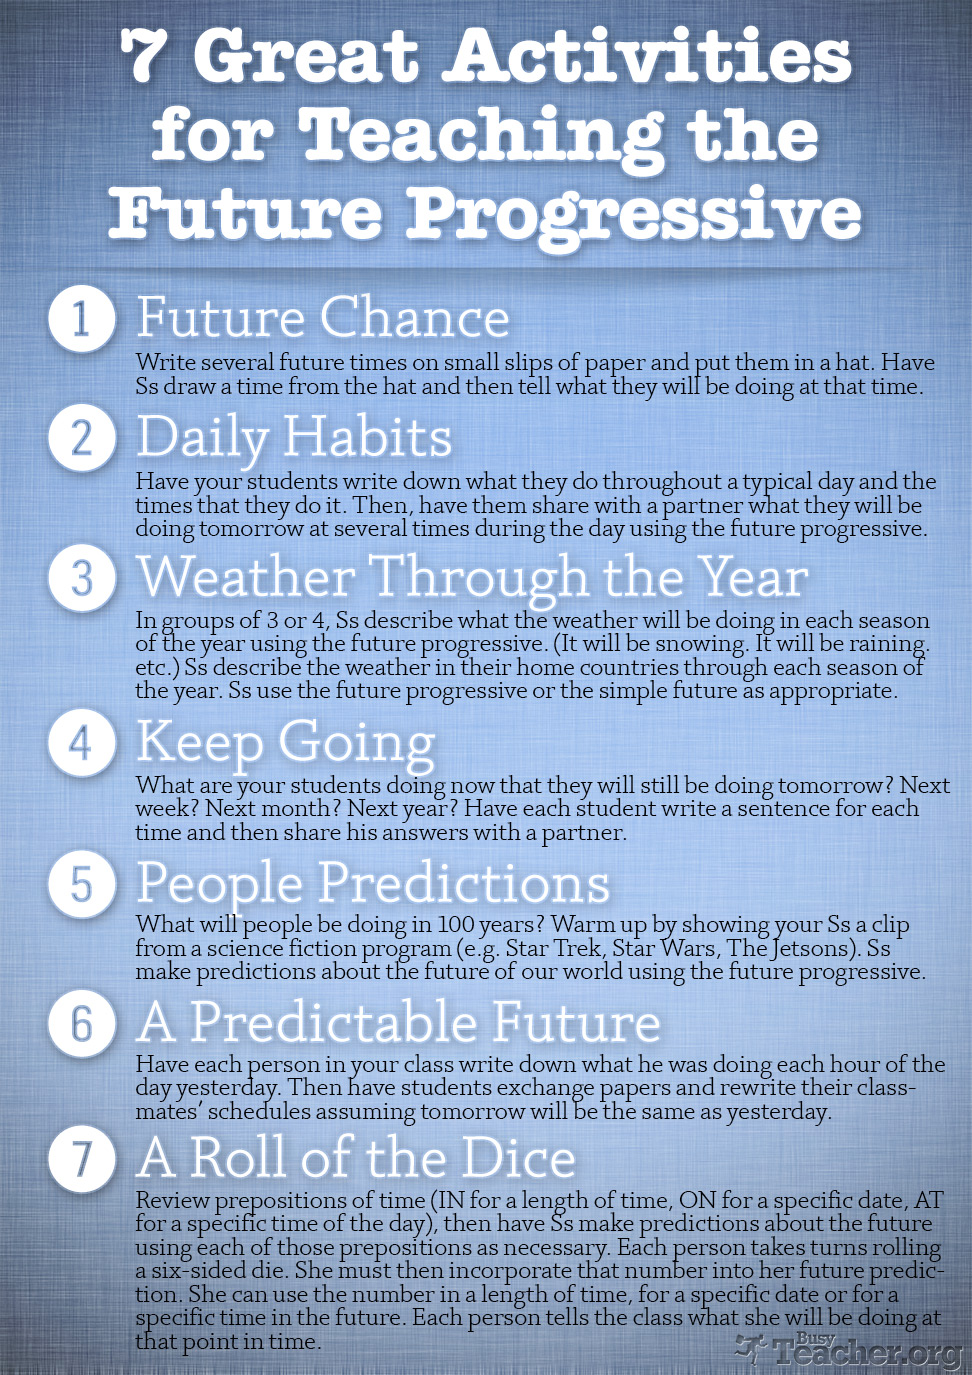 7 Great Activities to Teach the Future Progressive: Poster